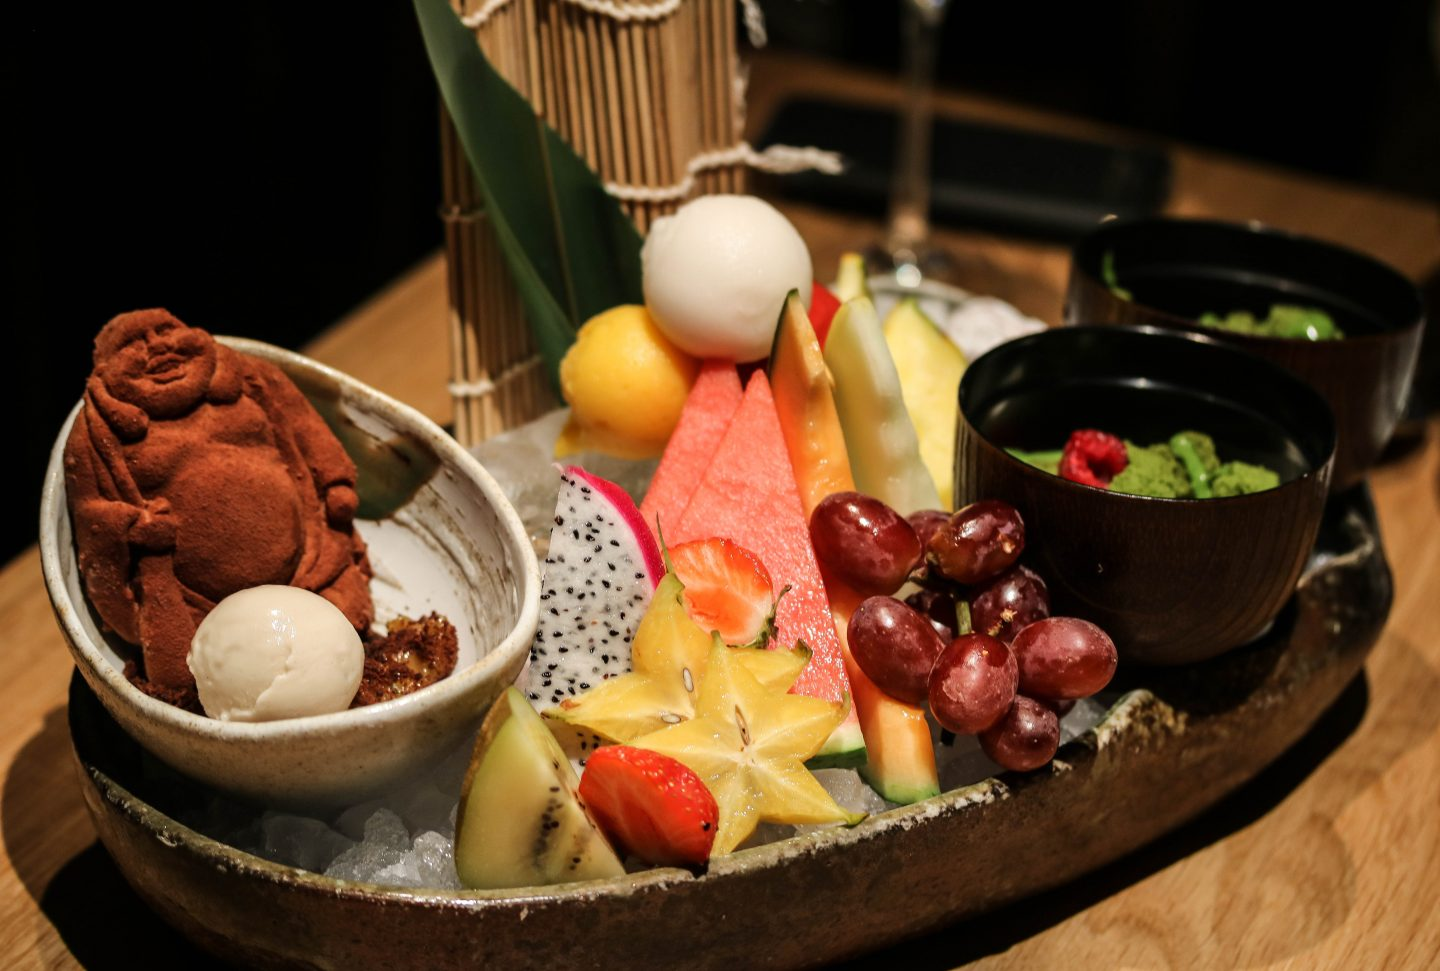 Roka Aldwych - Lifestyle Enthusiast Blog - What to order at Roka - Dessert platter of chocolate buddha, yuzu truffles, fruit and panna cotta